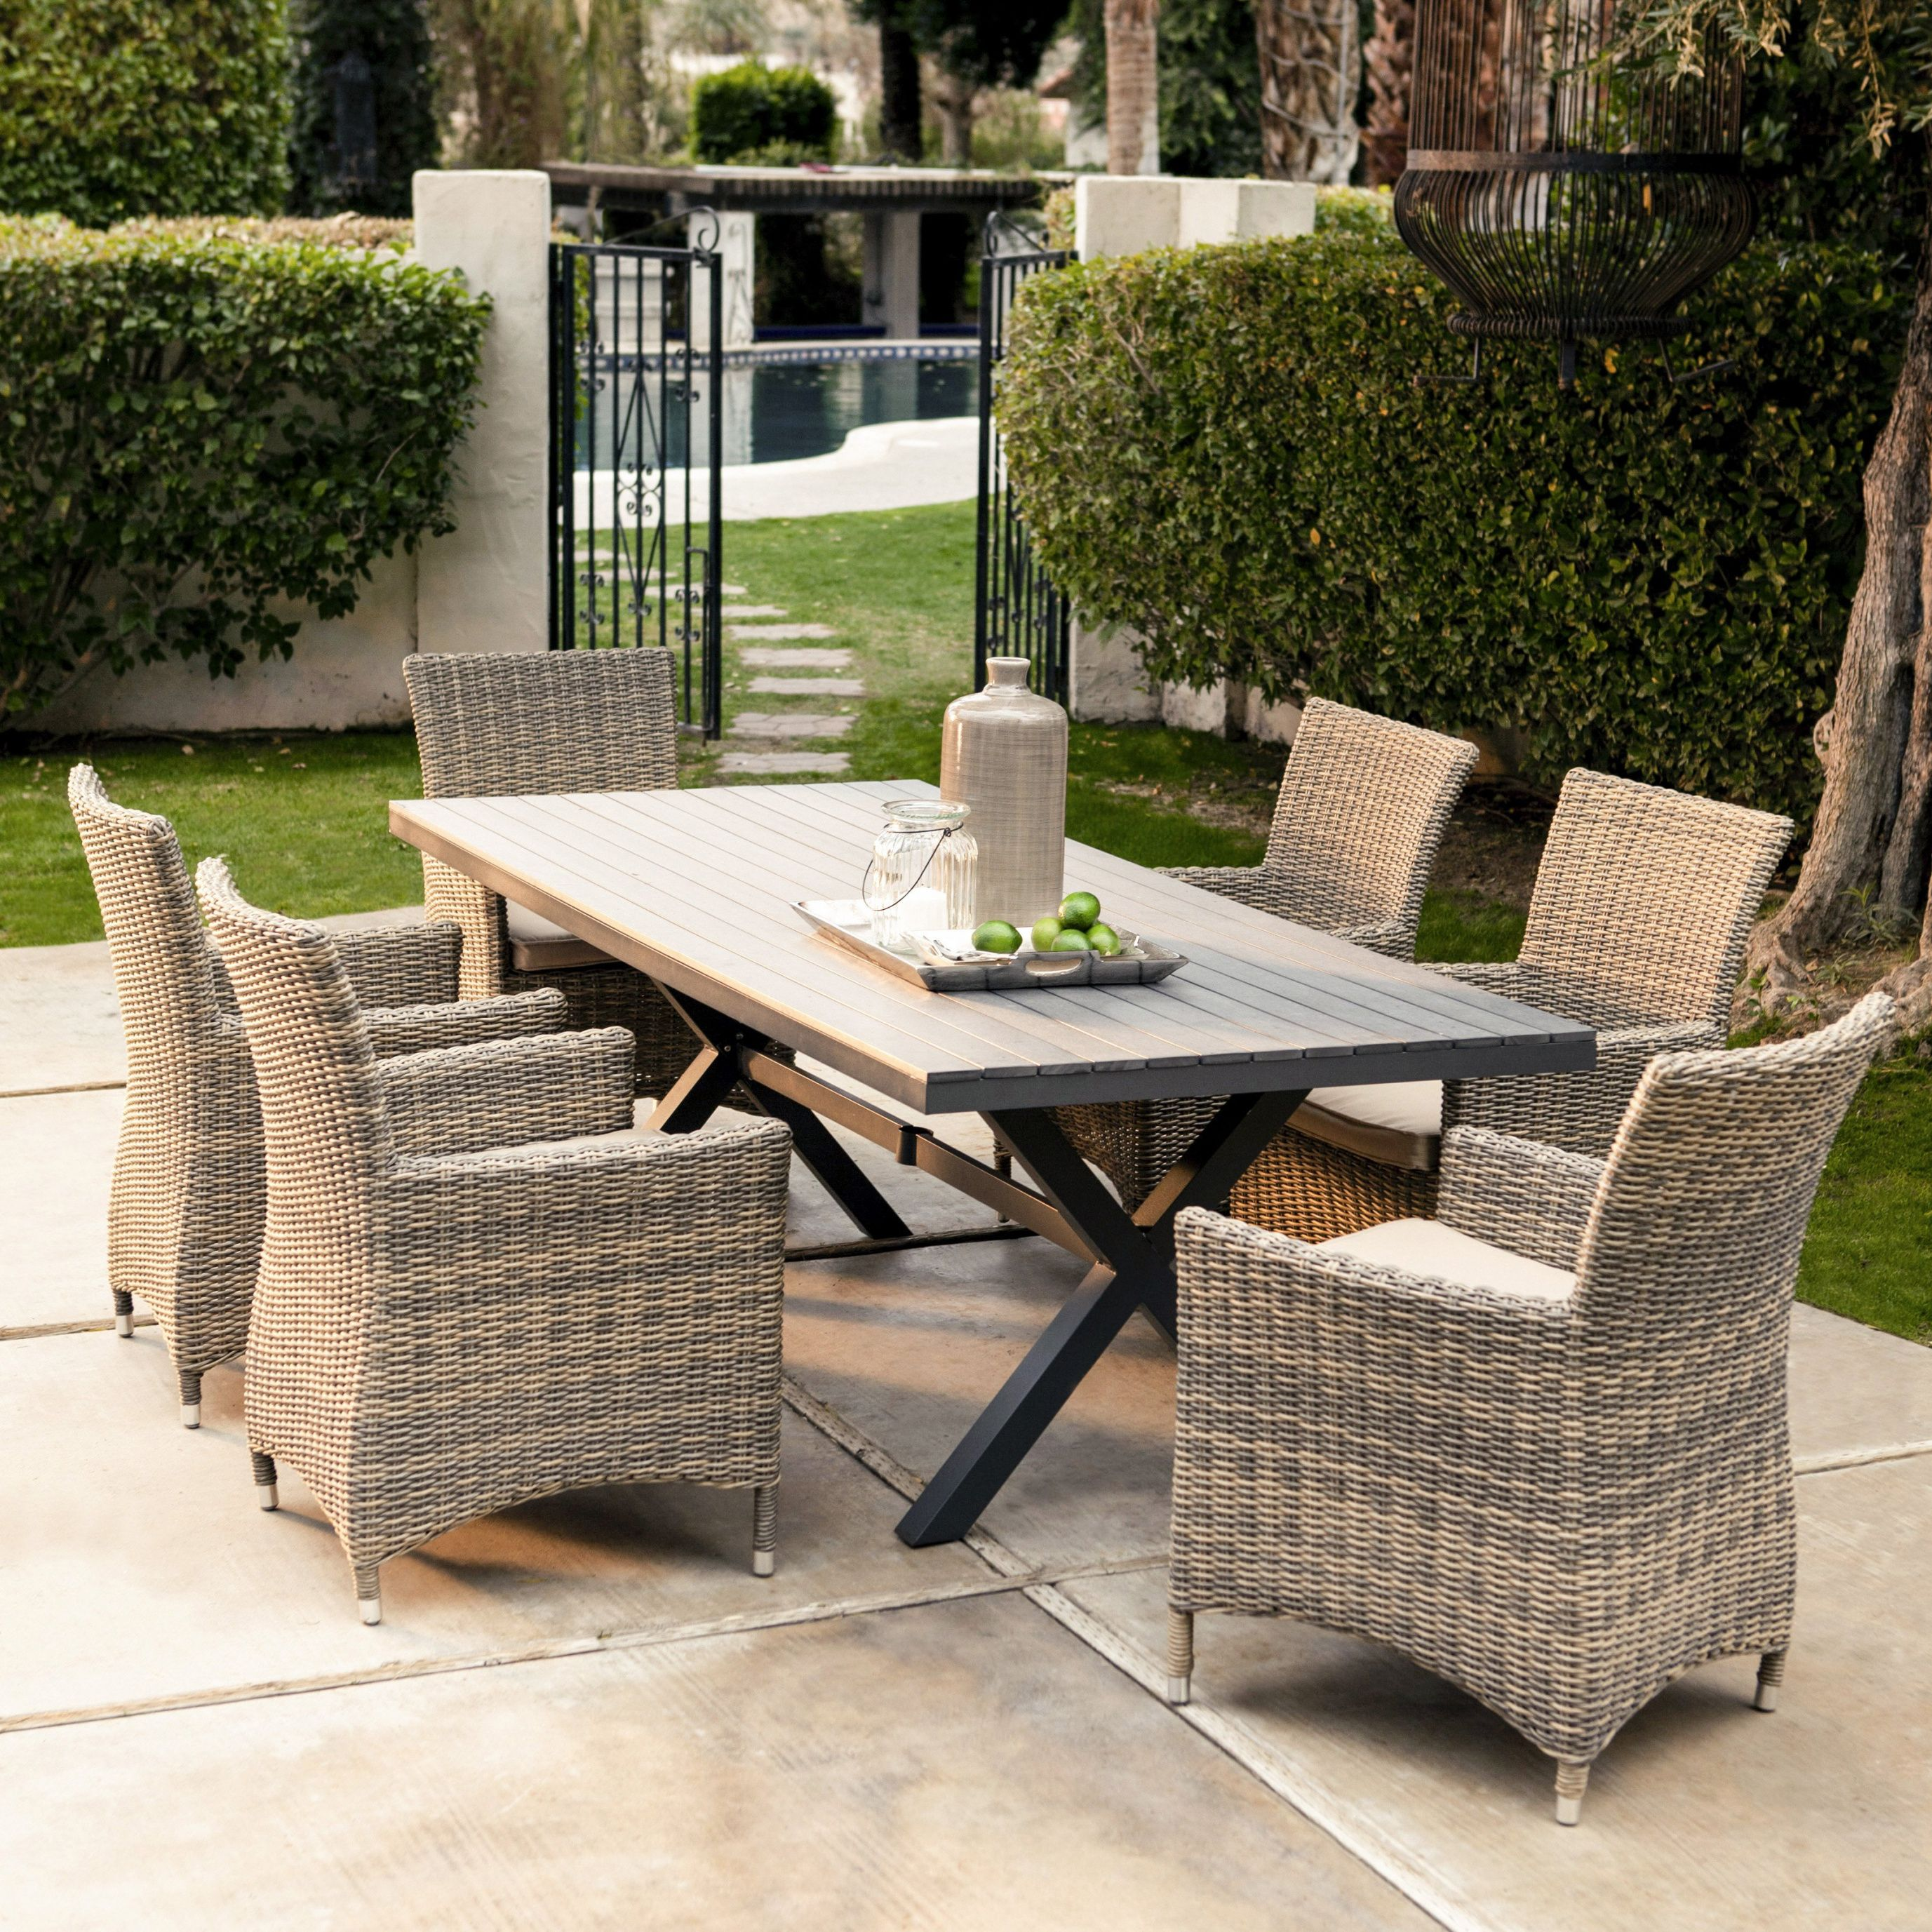 r woven table bistro furniture under cheap wicker patio best sets of outdoor design chair cushions choice by rocking walmart